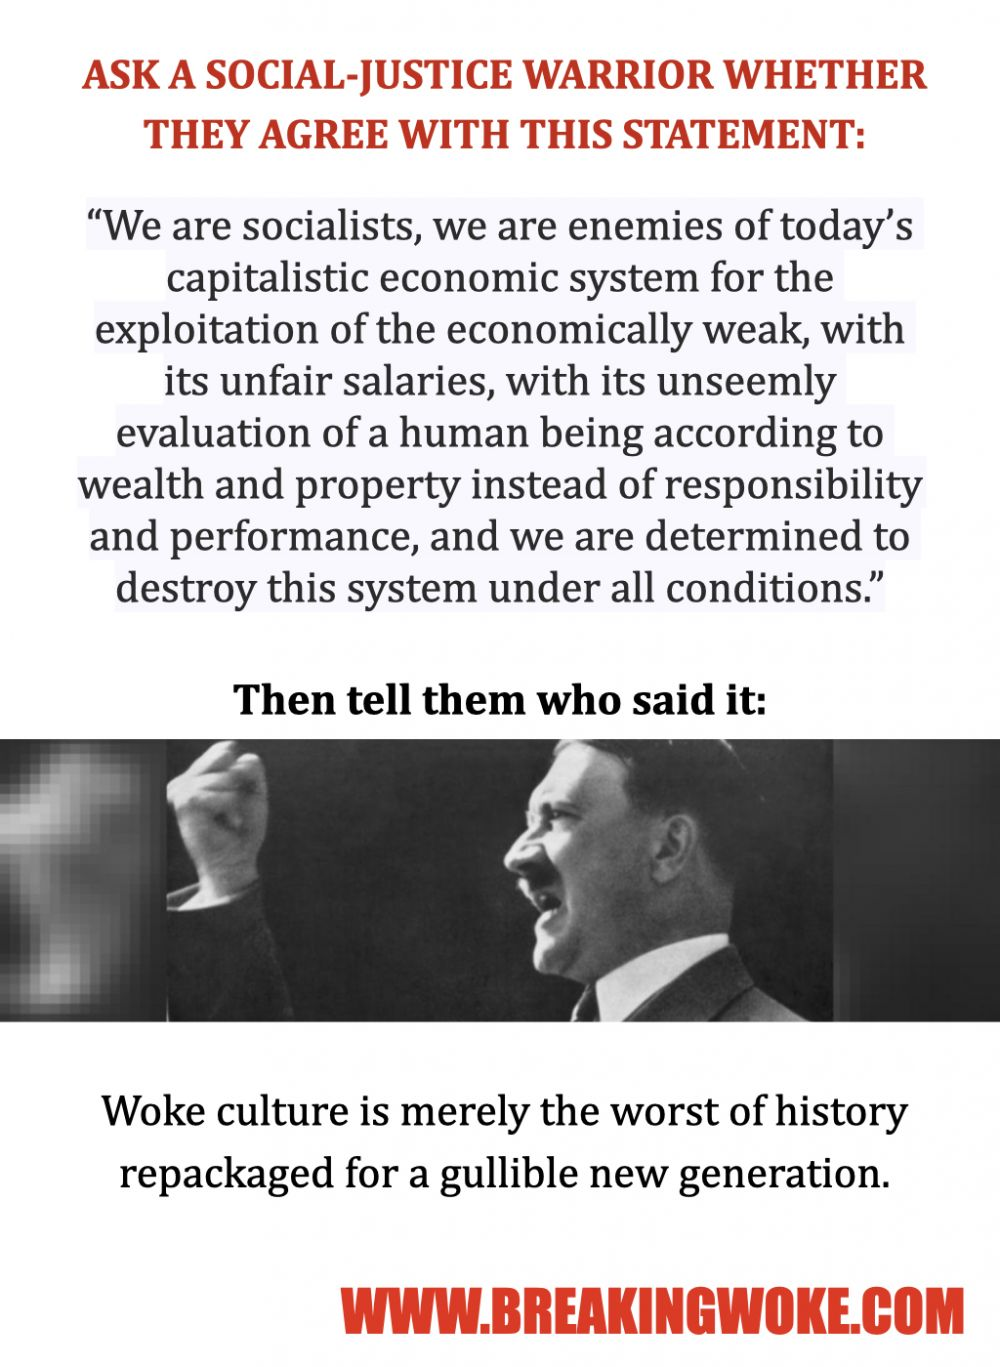 Are you woke enough for Adolf?